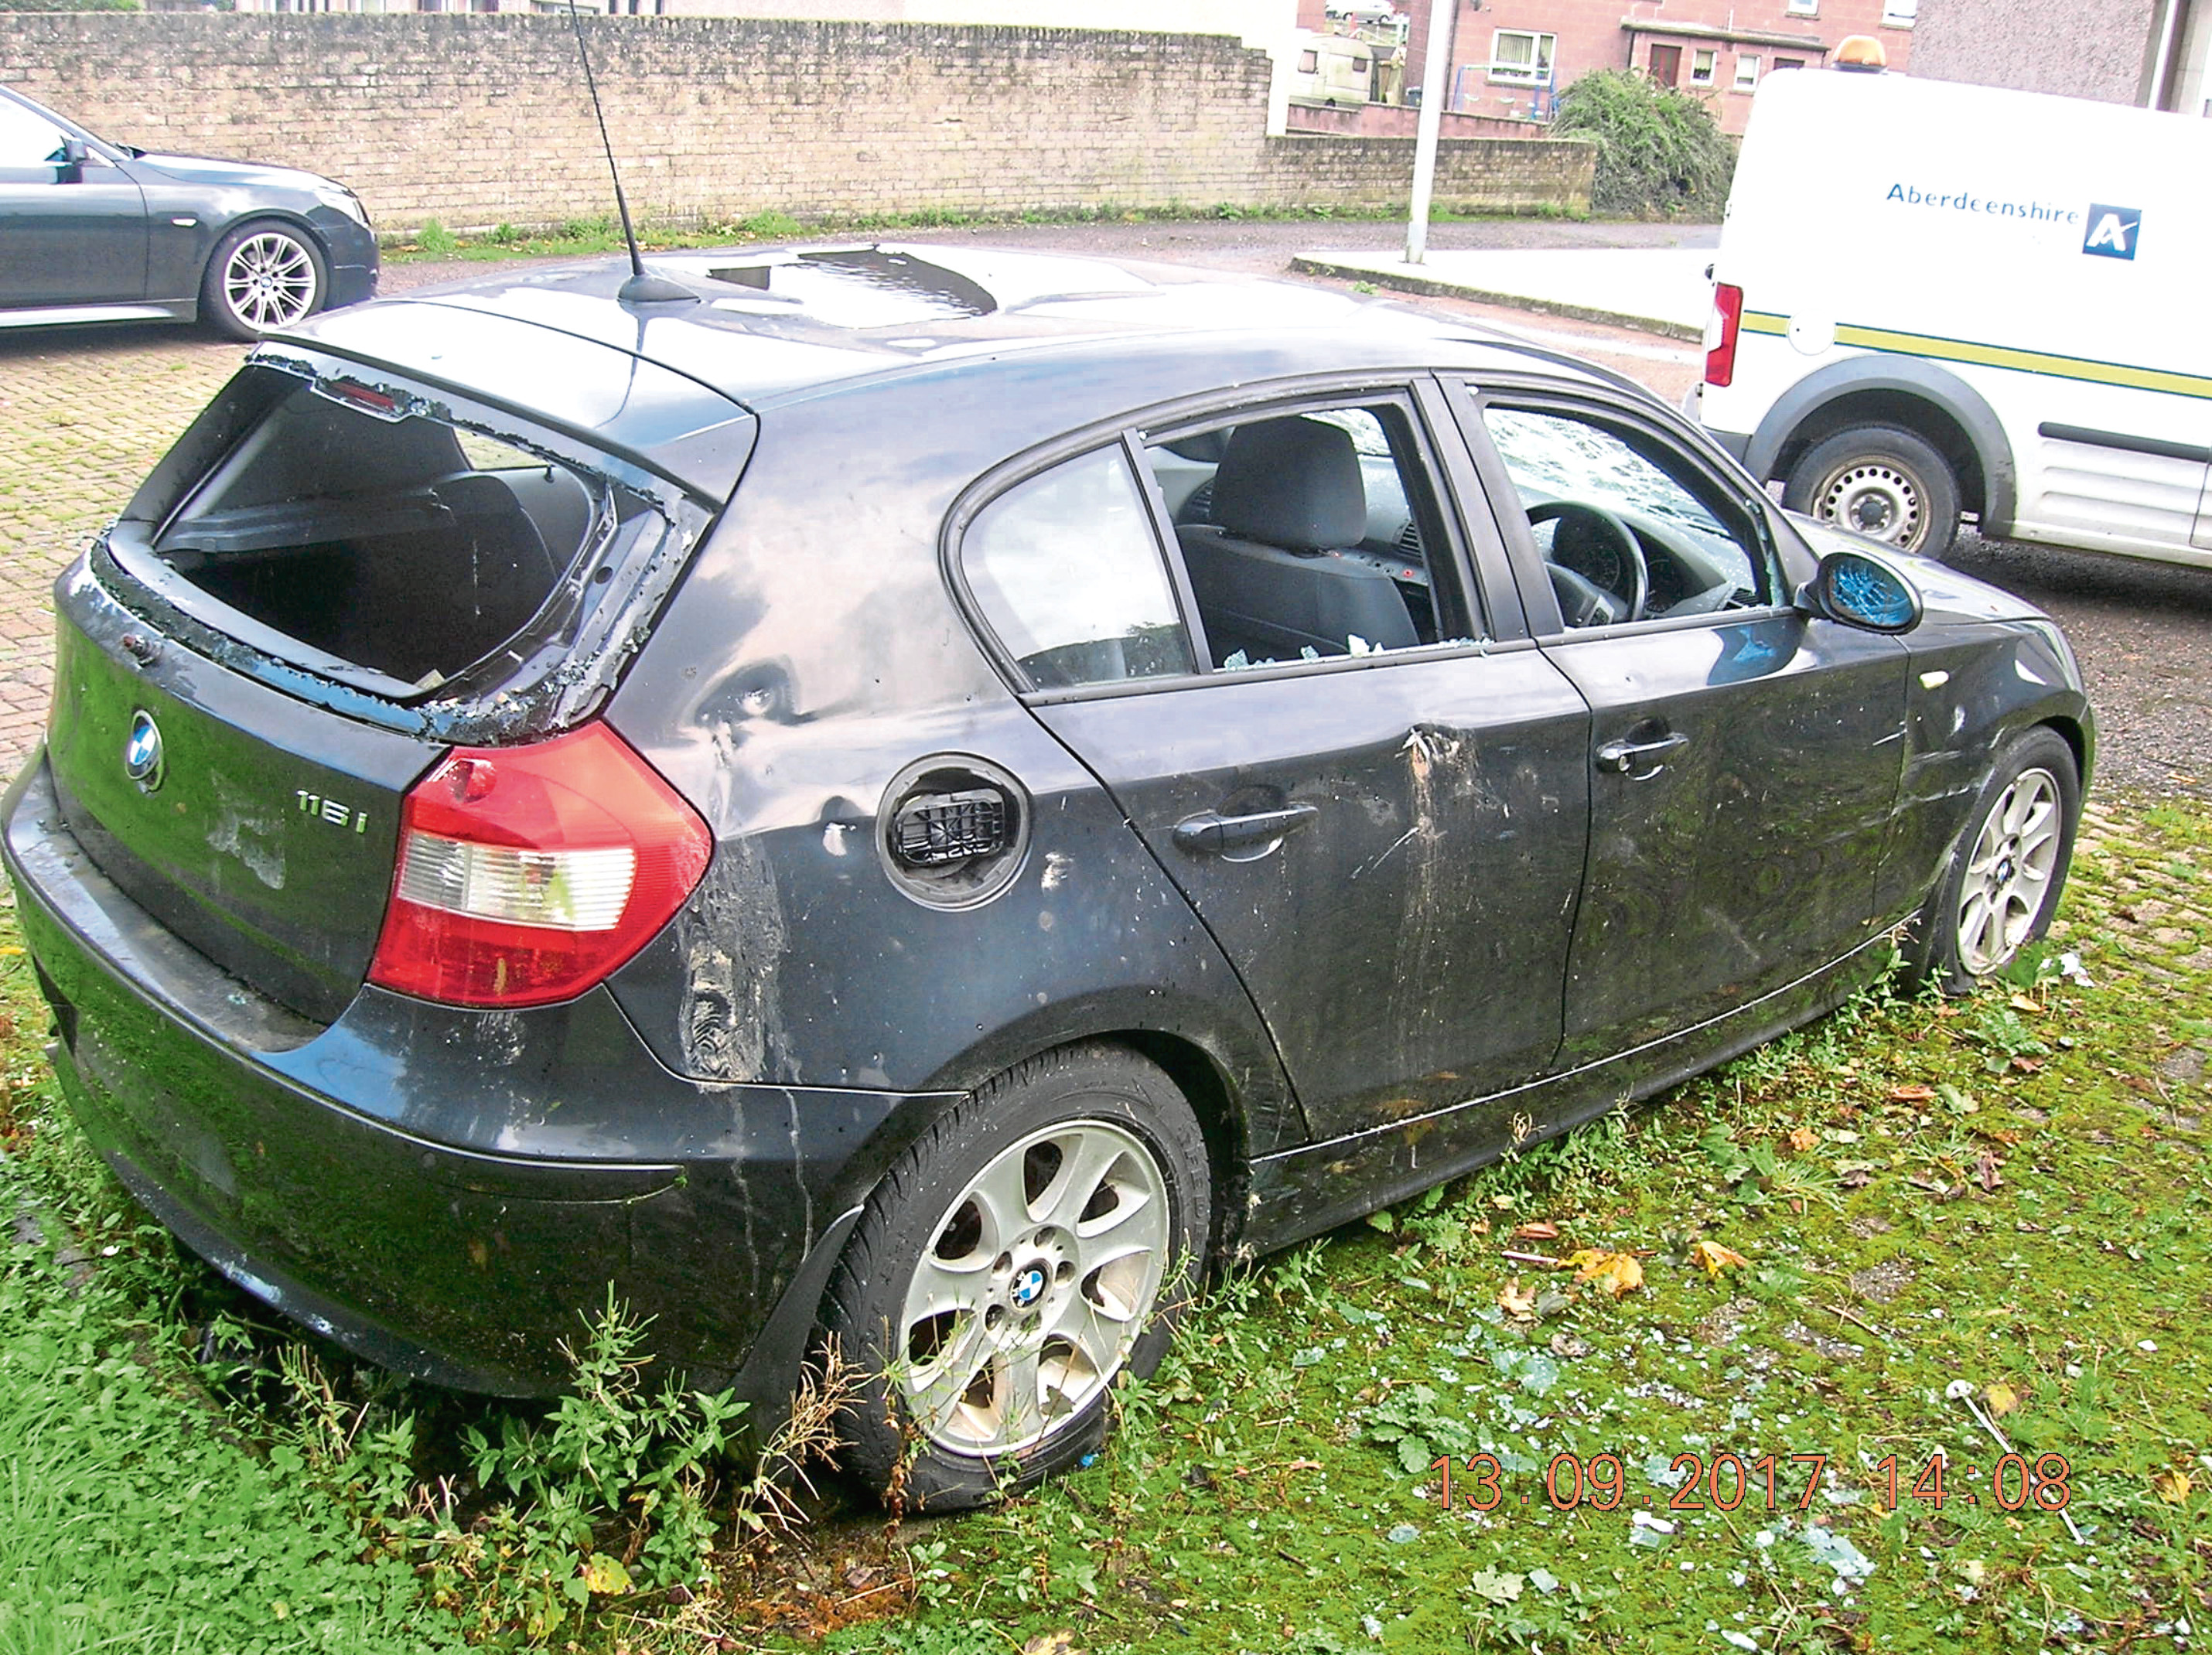 One of the cars dumped in Aberdeenshire